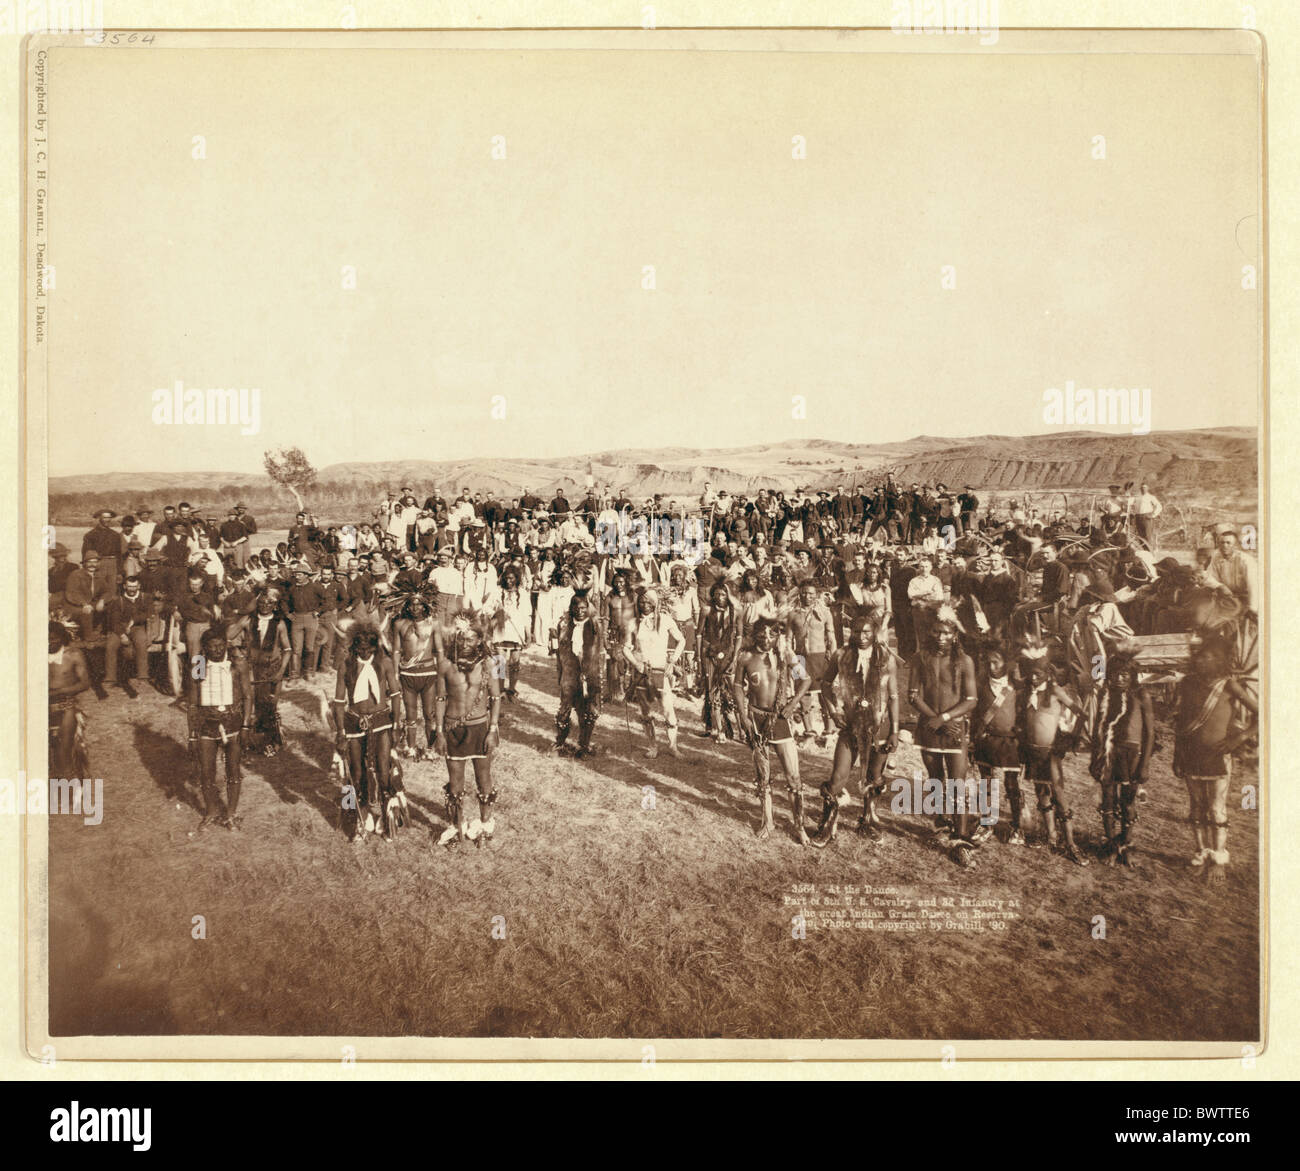 At the Dance wild west U.S. Cavalry Infantry Indian Grass Dance Reservation indians army USA America United - Stock Image